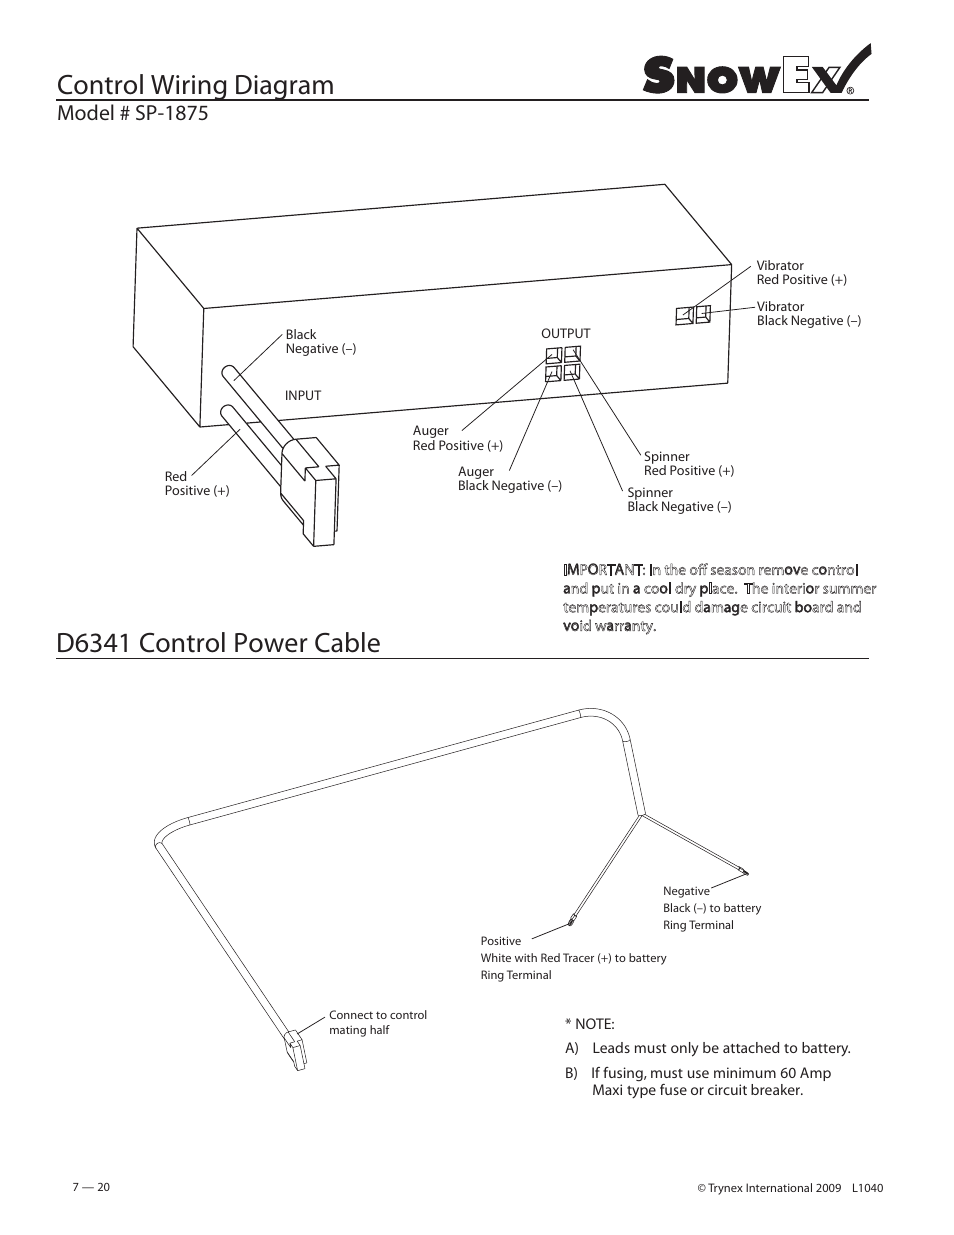 Control Wiring Diagram  D6341 Control Power Cable  Model   Sp